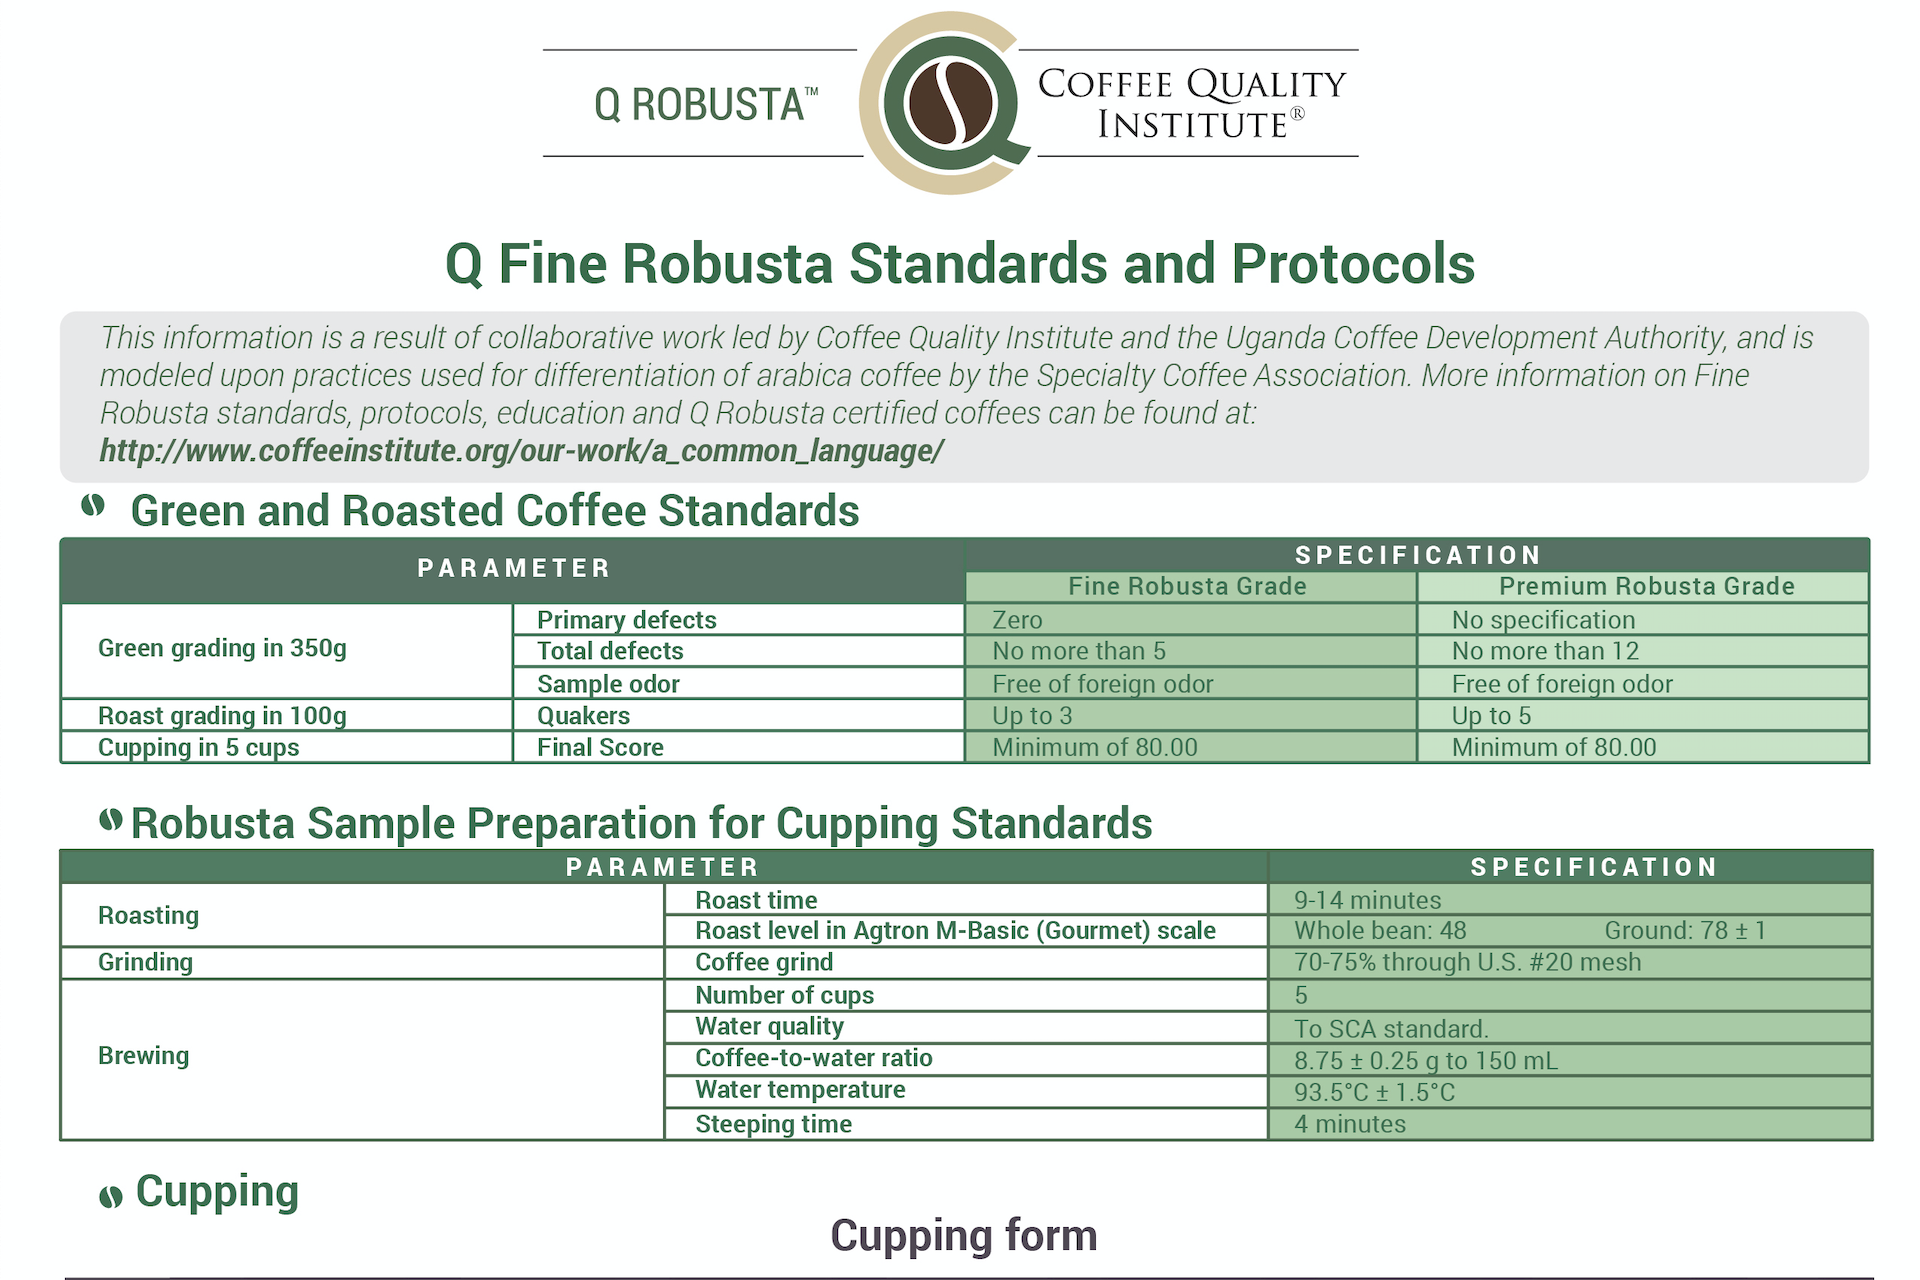 New Fine Robusta Resources